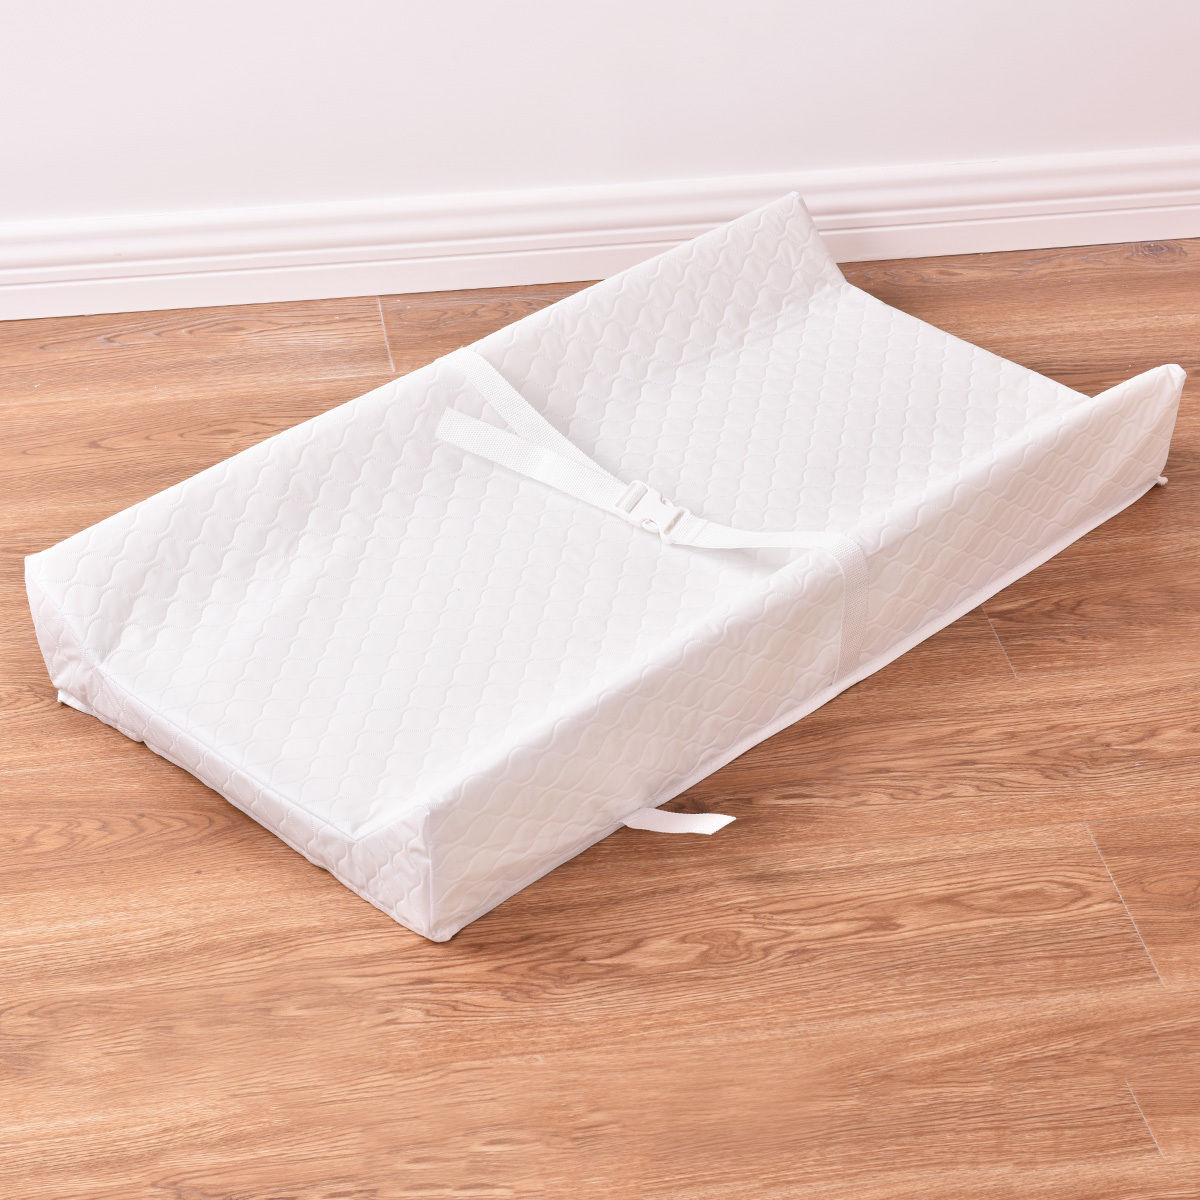 Costway Baby Table Contoured Changing Pad Diaper Change Nursery Cushion by Costway